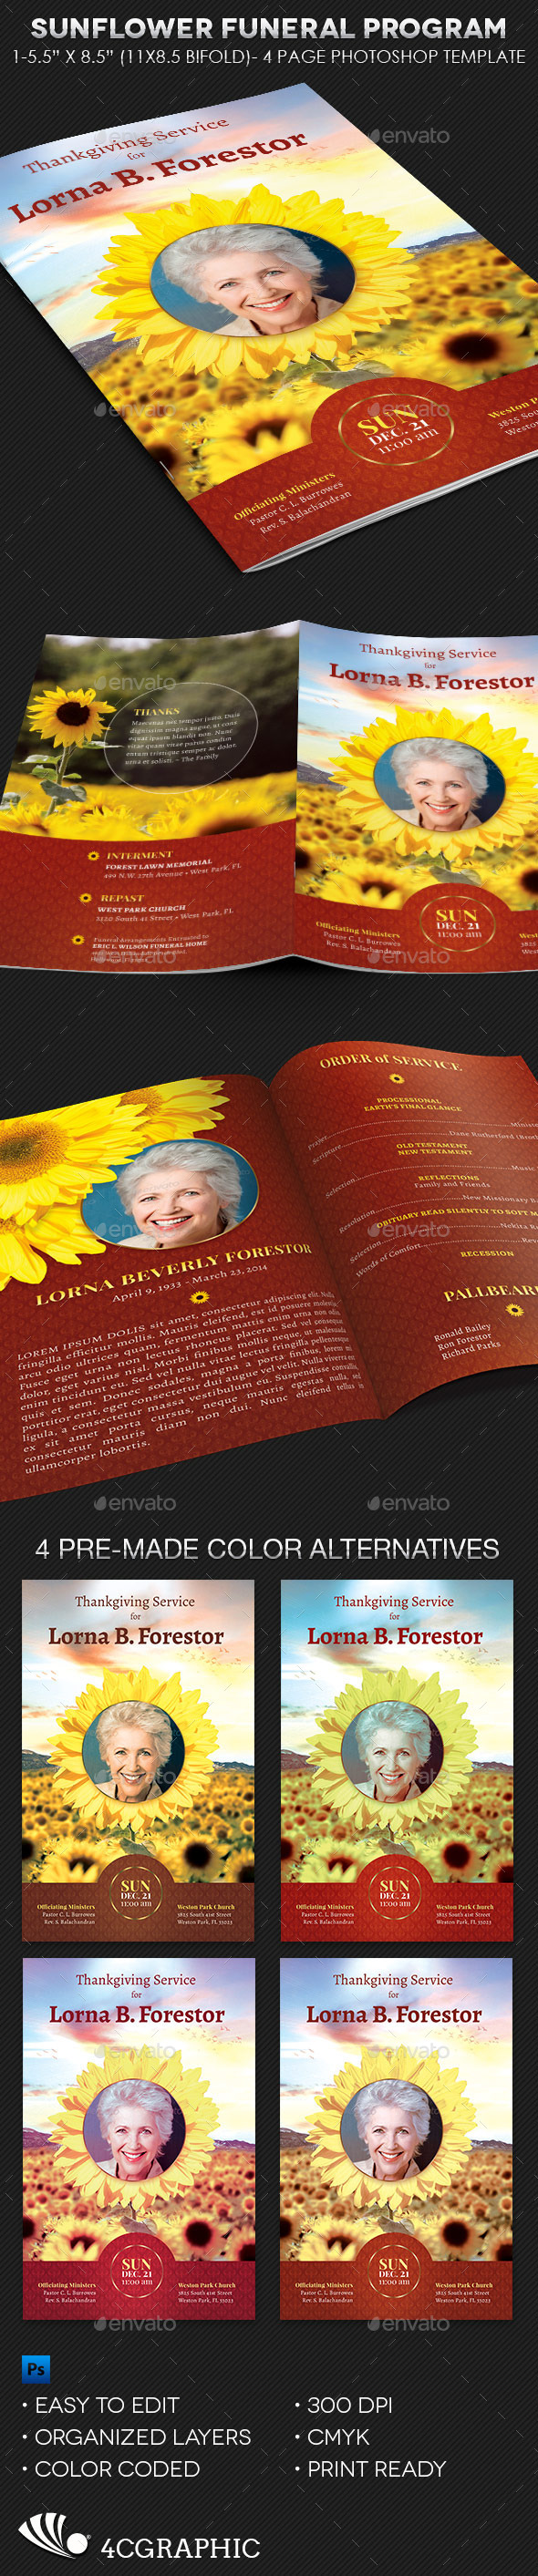 Sunflower Funeral Program Template - Informational Brochures